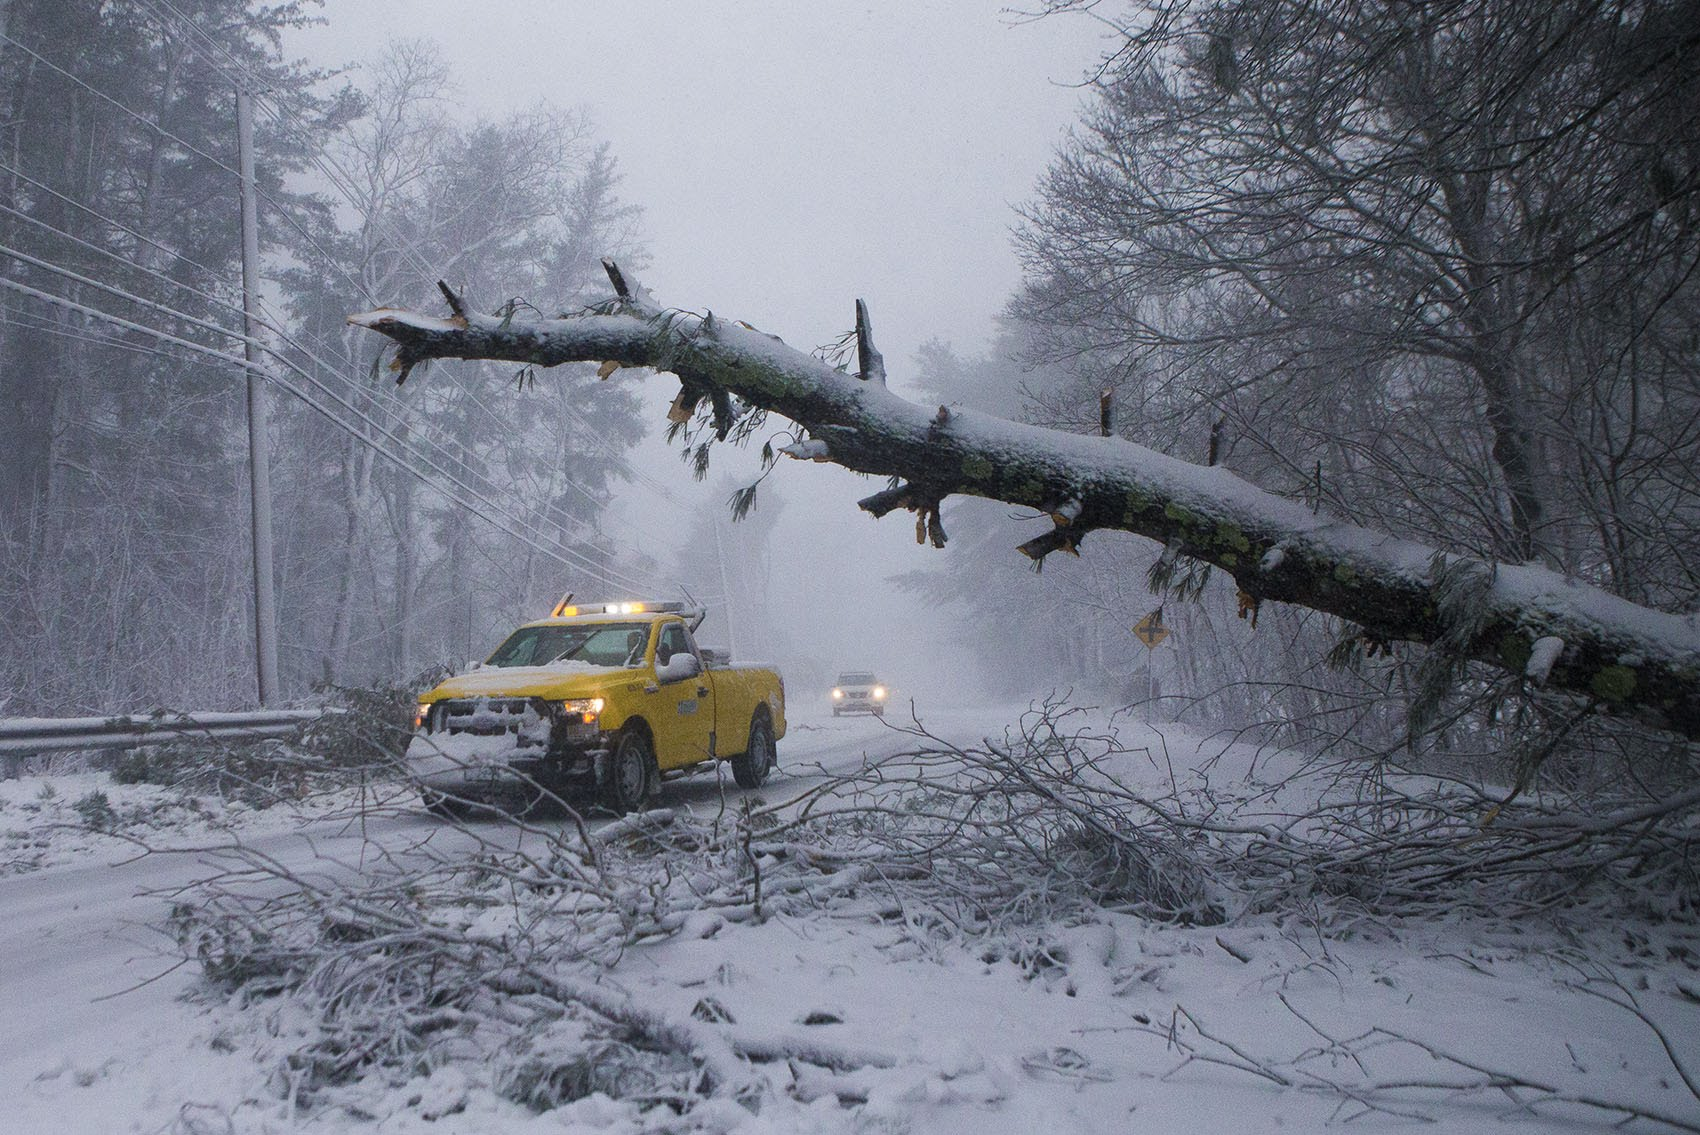 A MassDOT worker arrives where a tree had fallen across Route 53 in Pembroke. (Jesse Costa/WBUR)